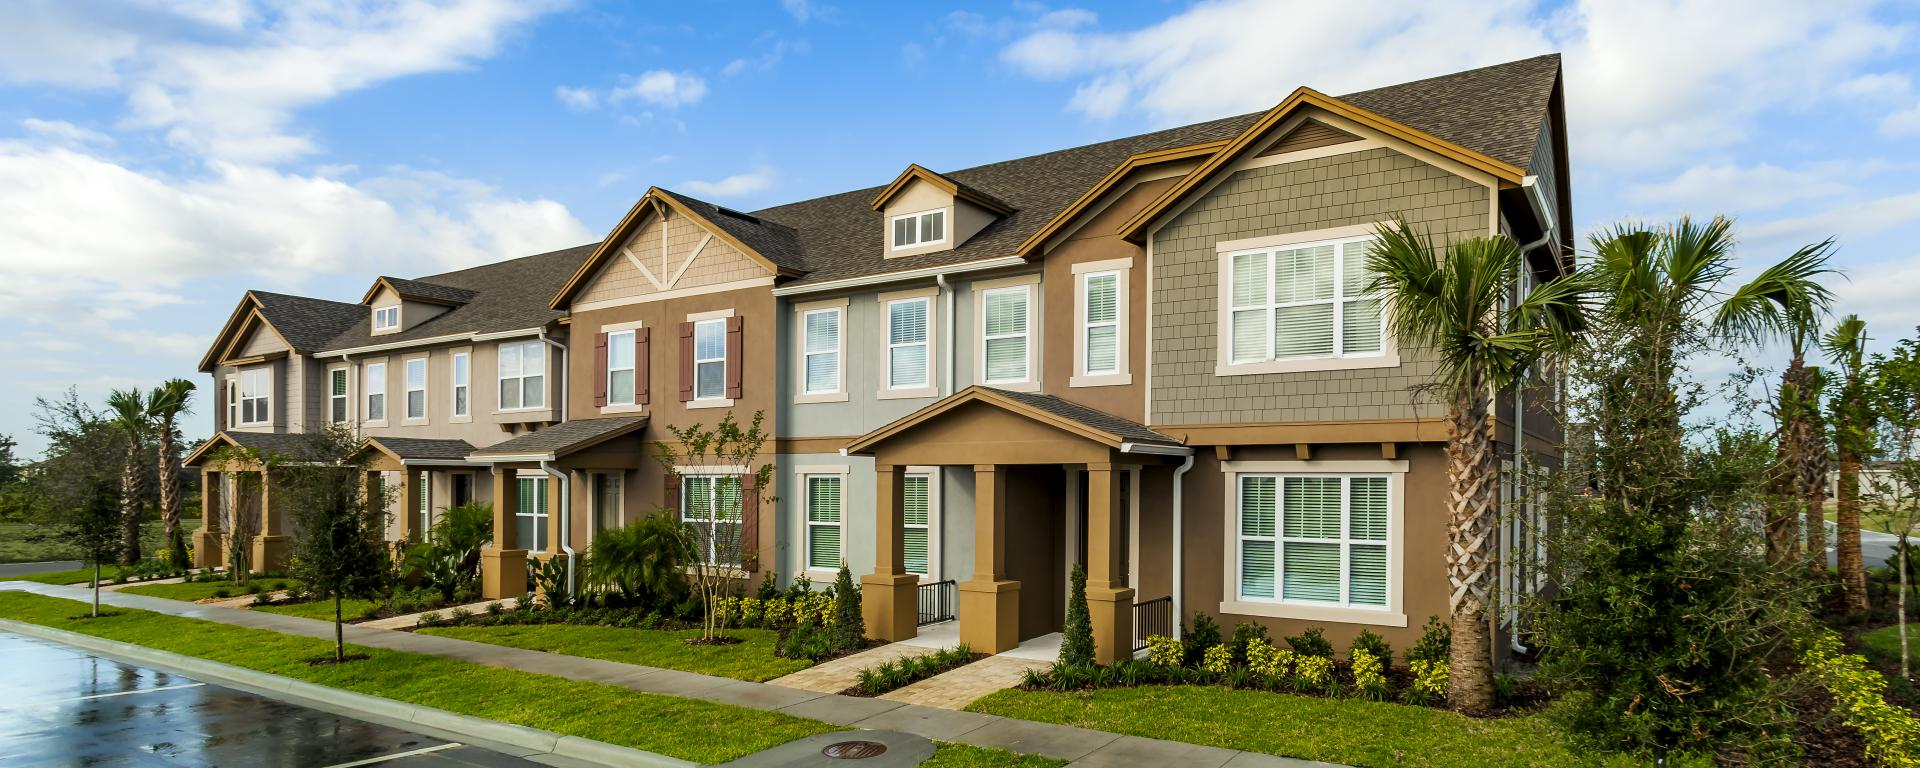 regina new home plan for hamlin reserve townhomes community in